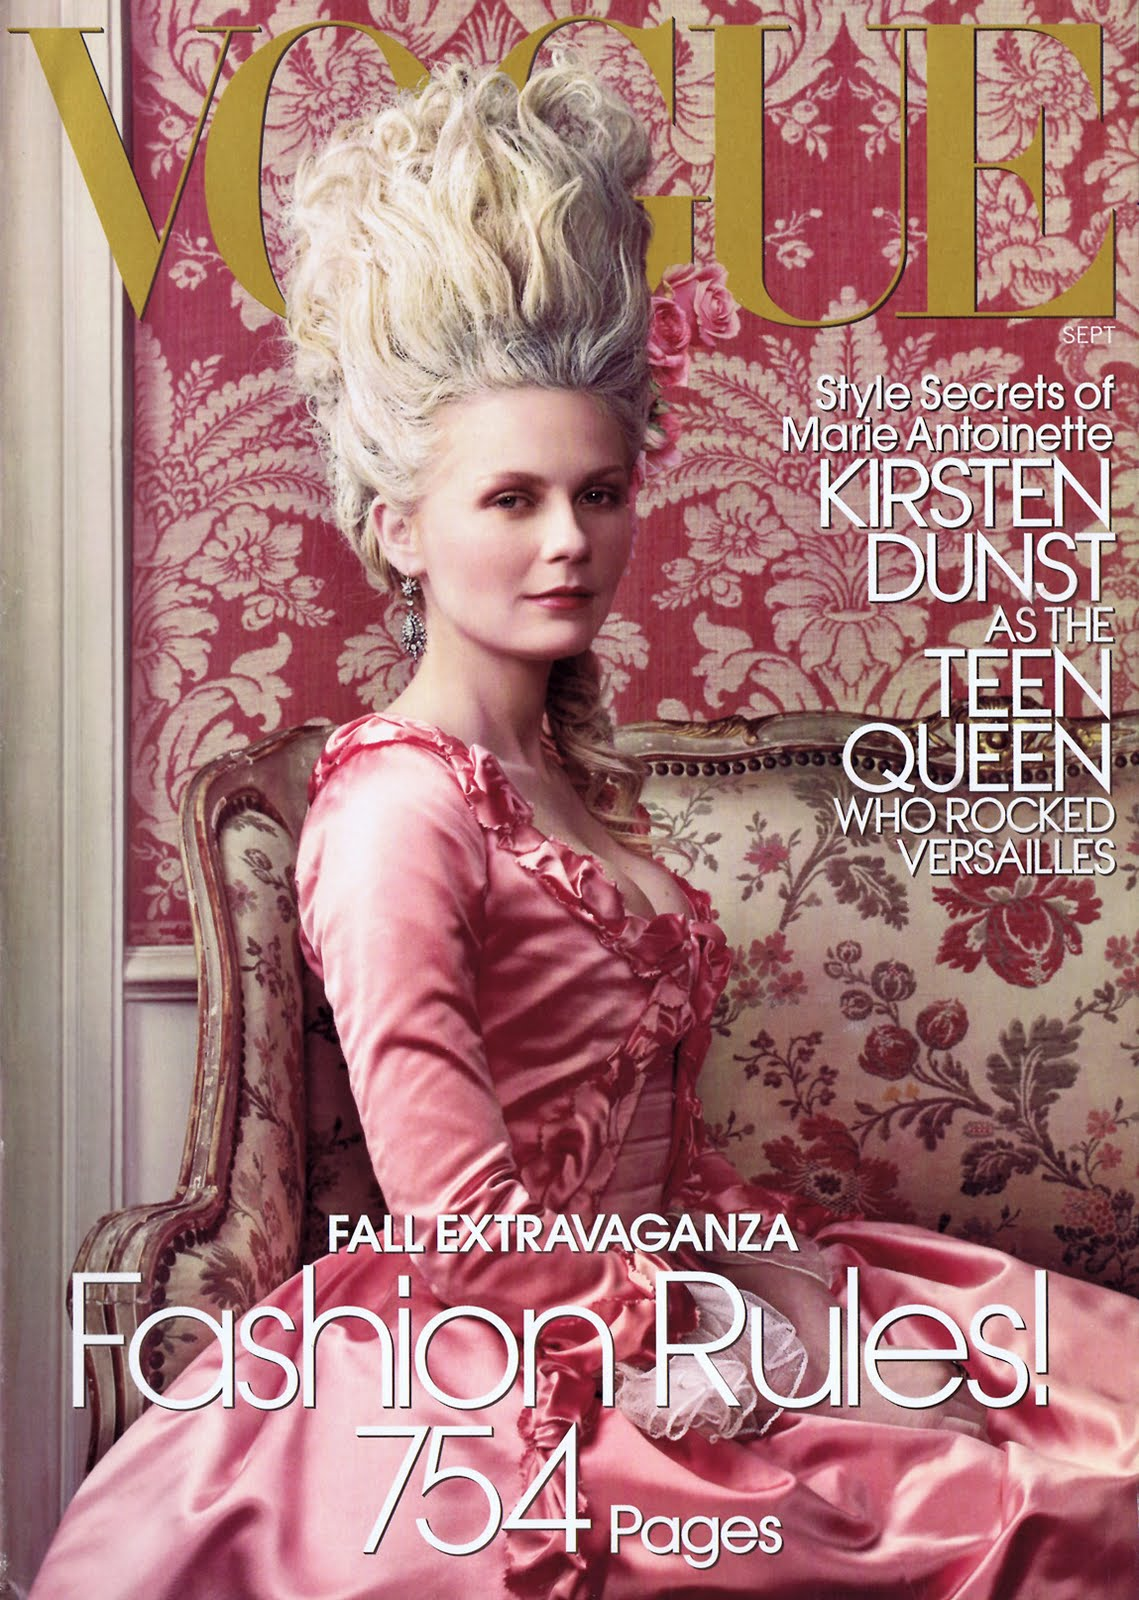 Fashion Book Cover Queen ~ Atf the teen queen who rocked versailles